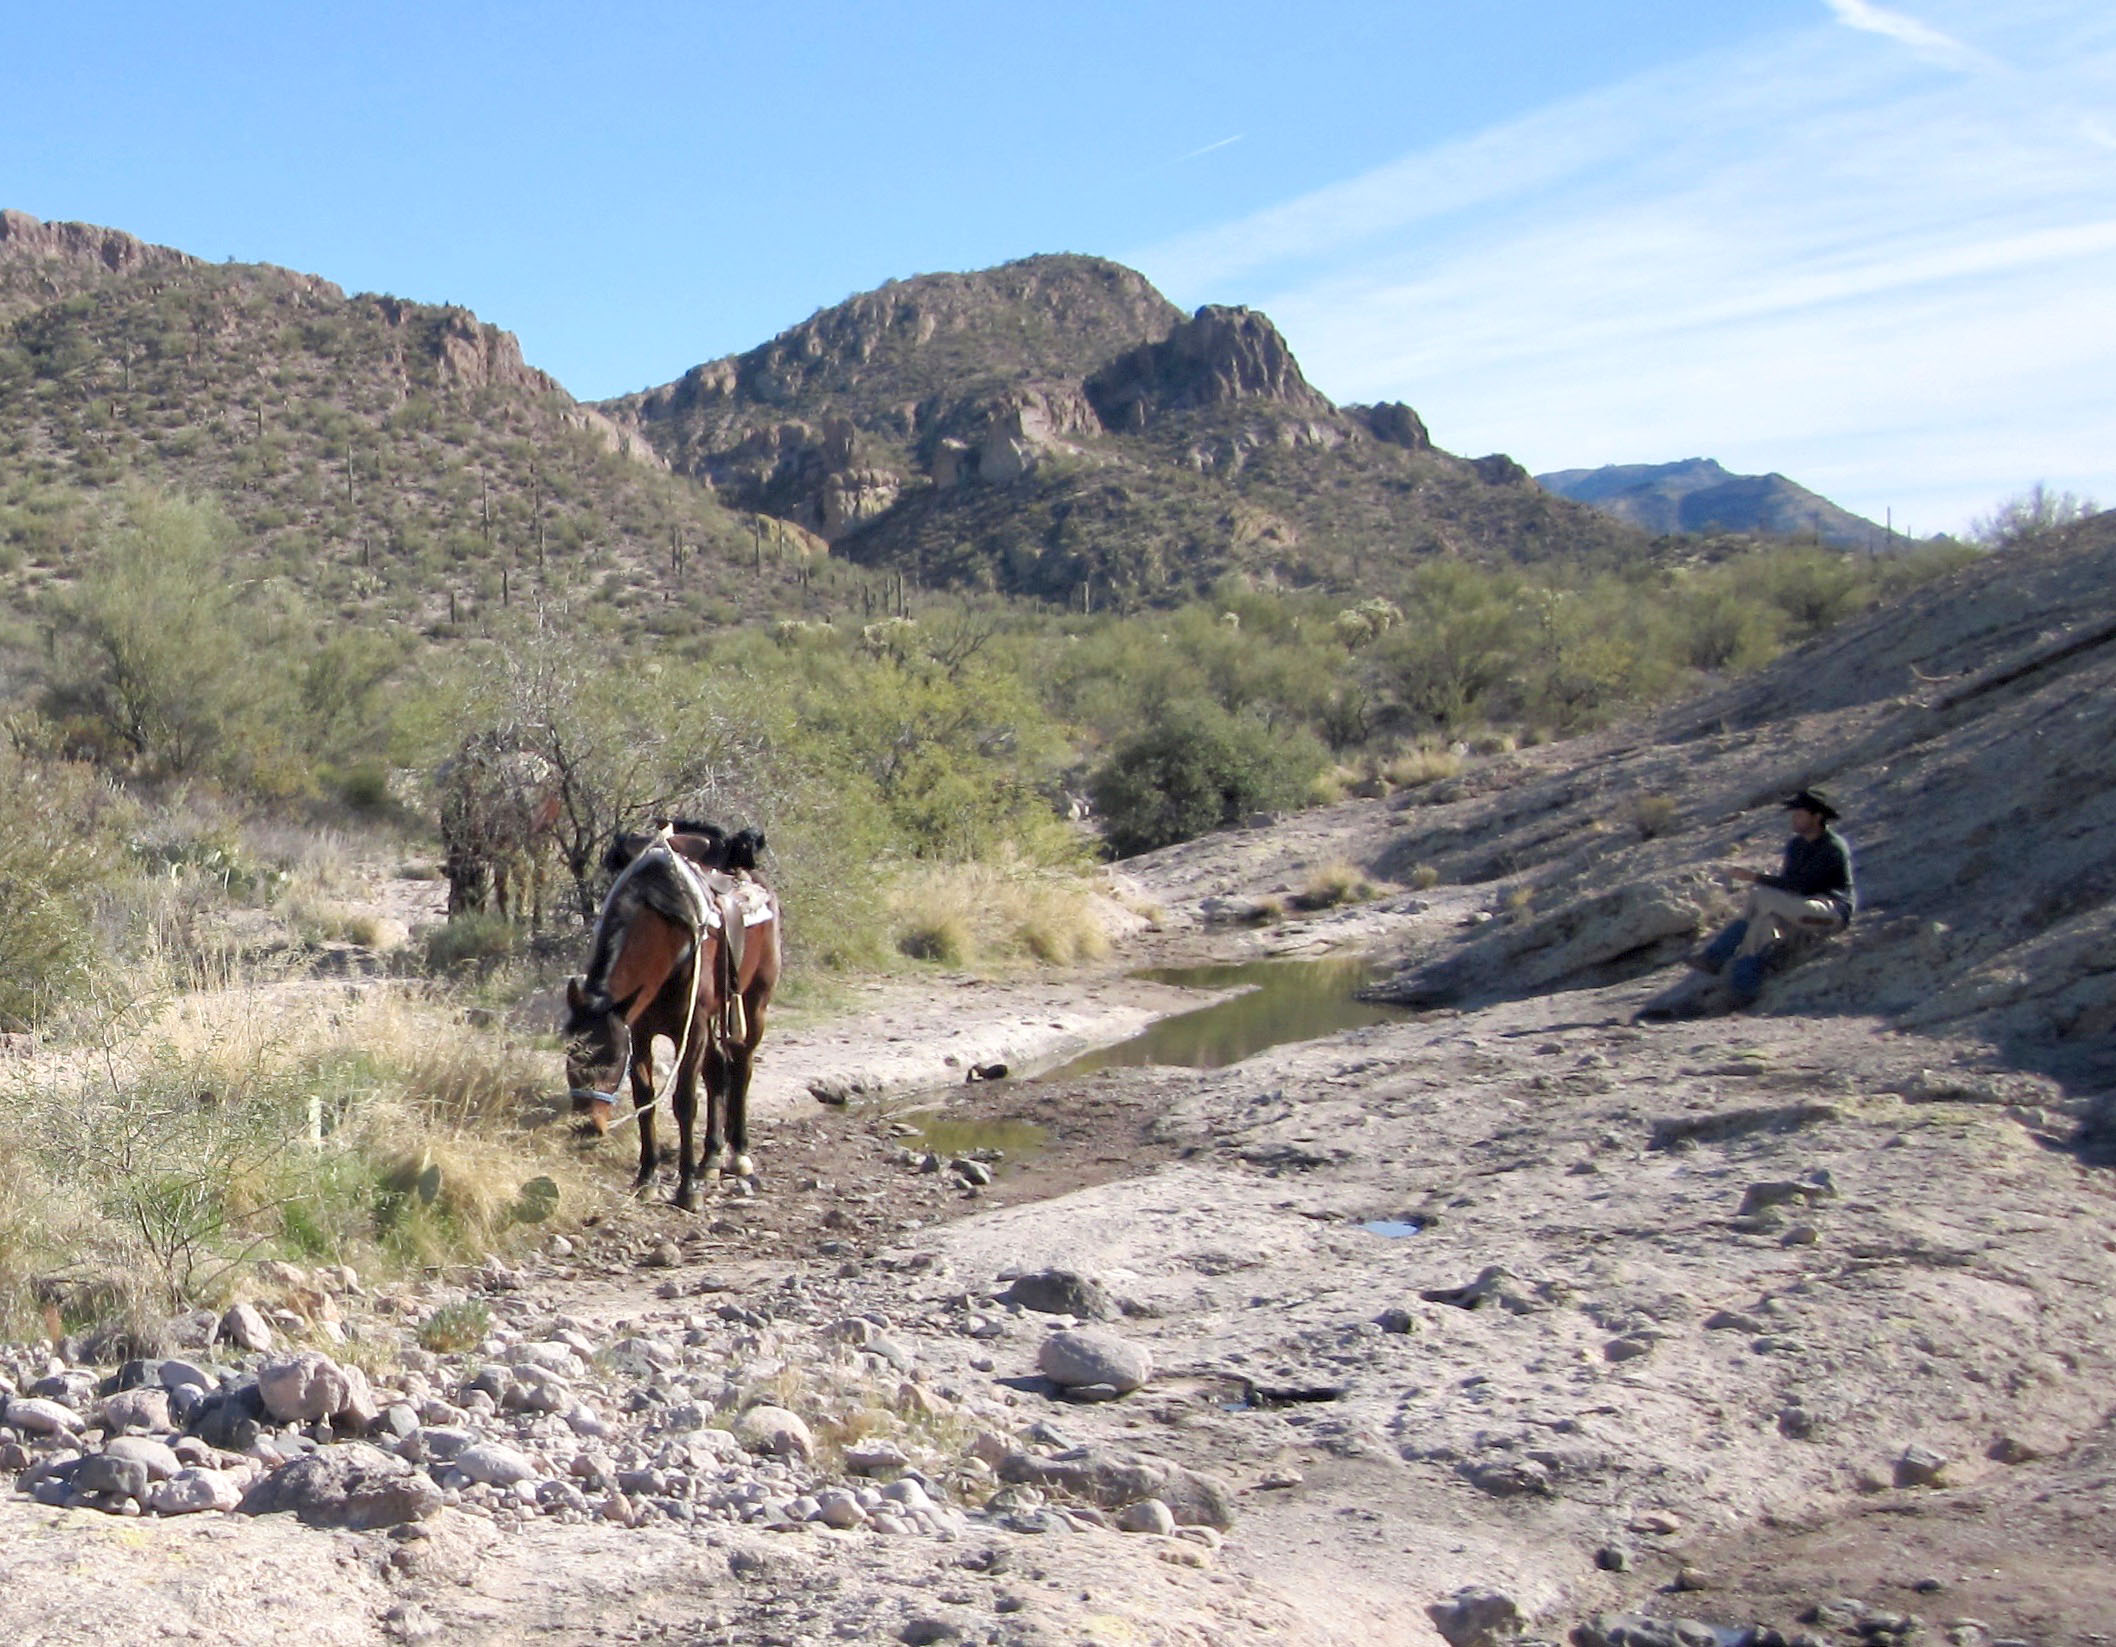 Remote horseback riding